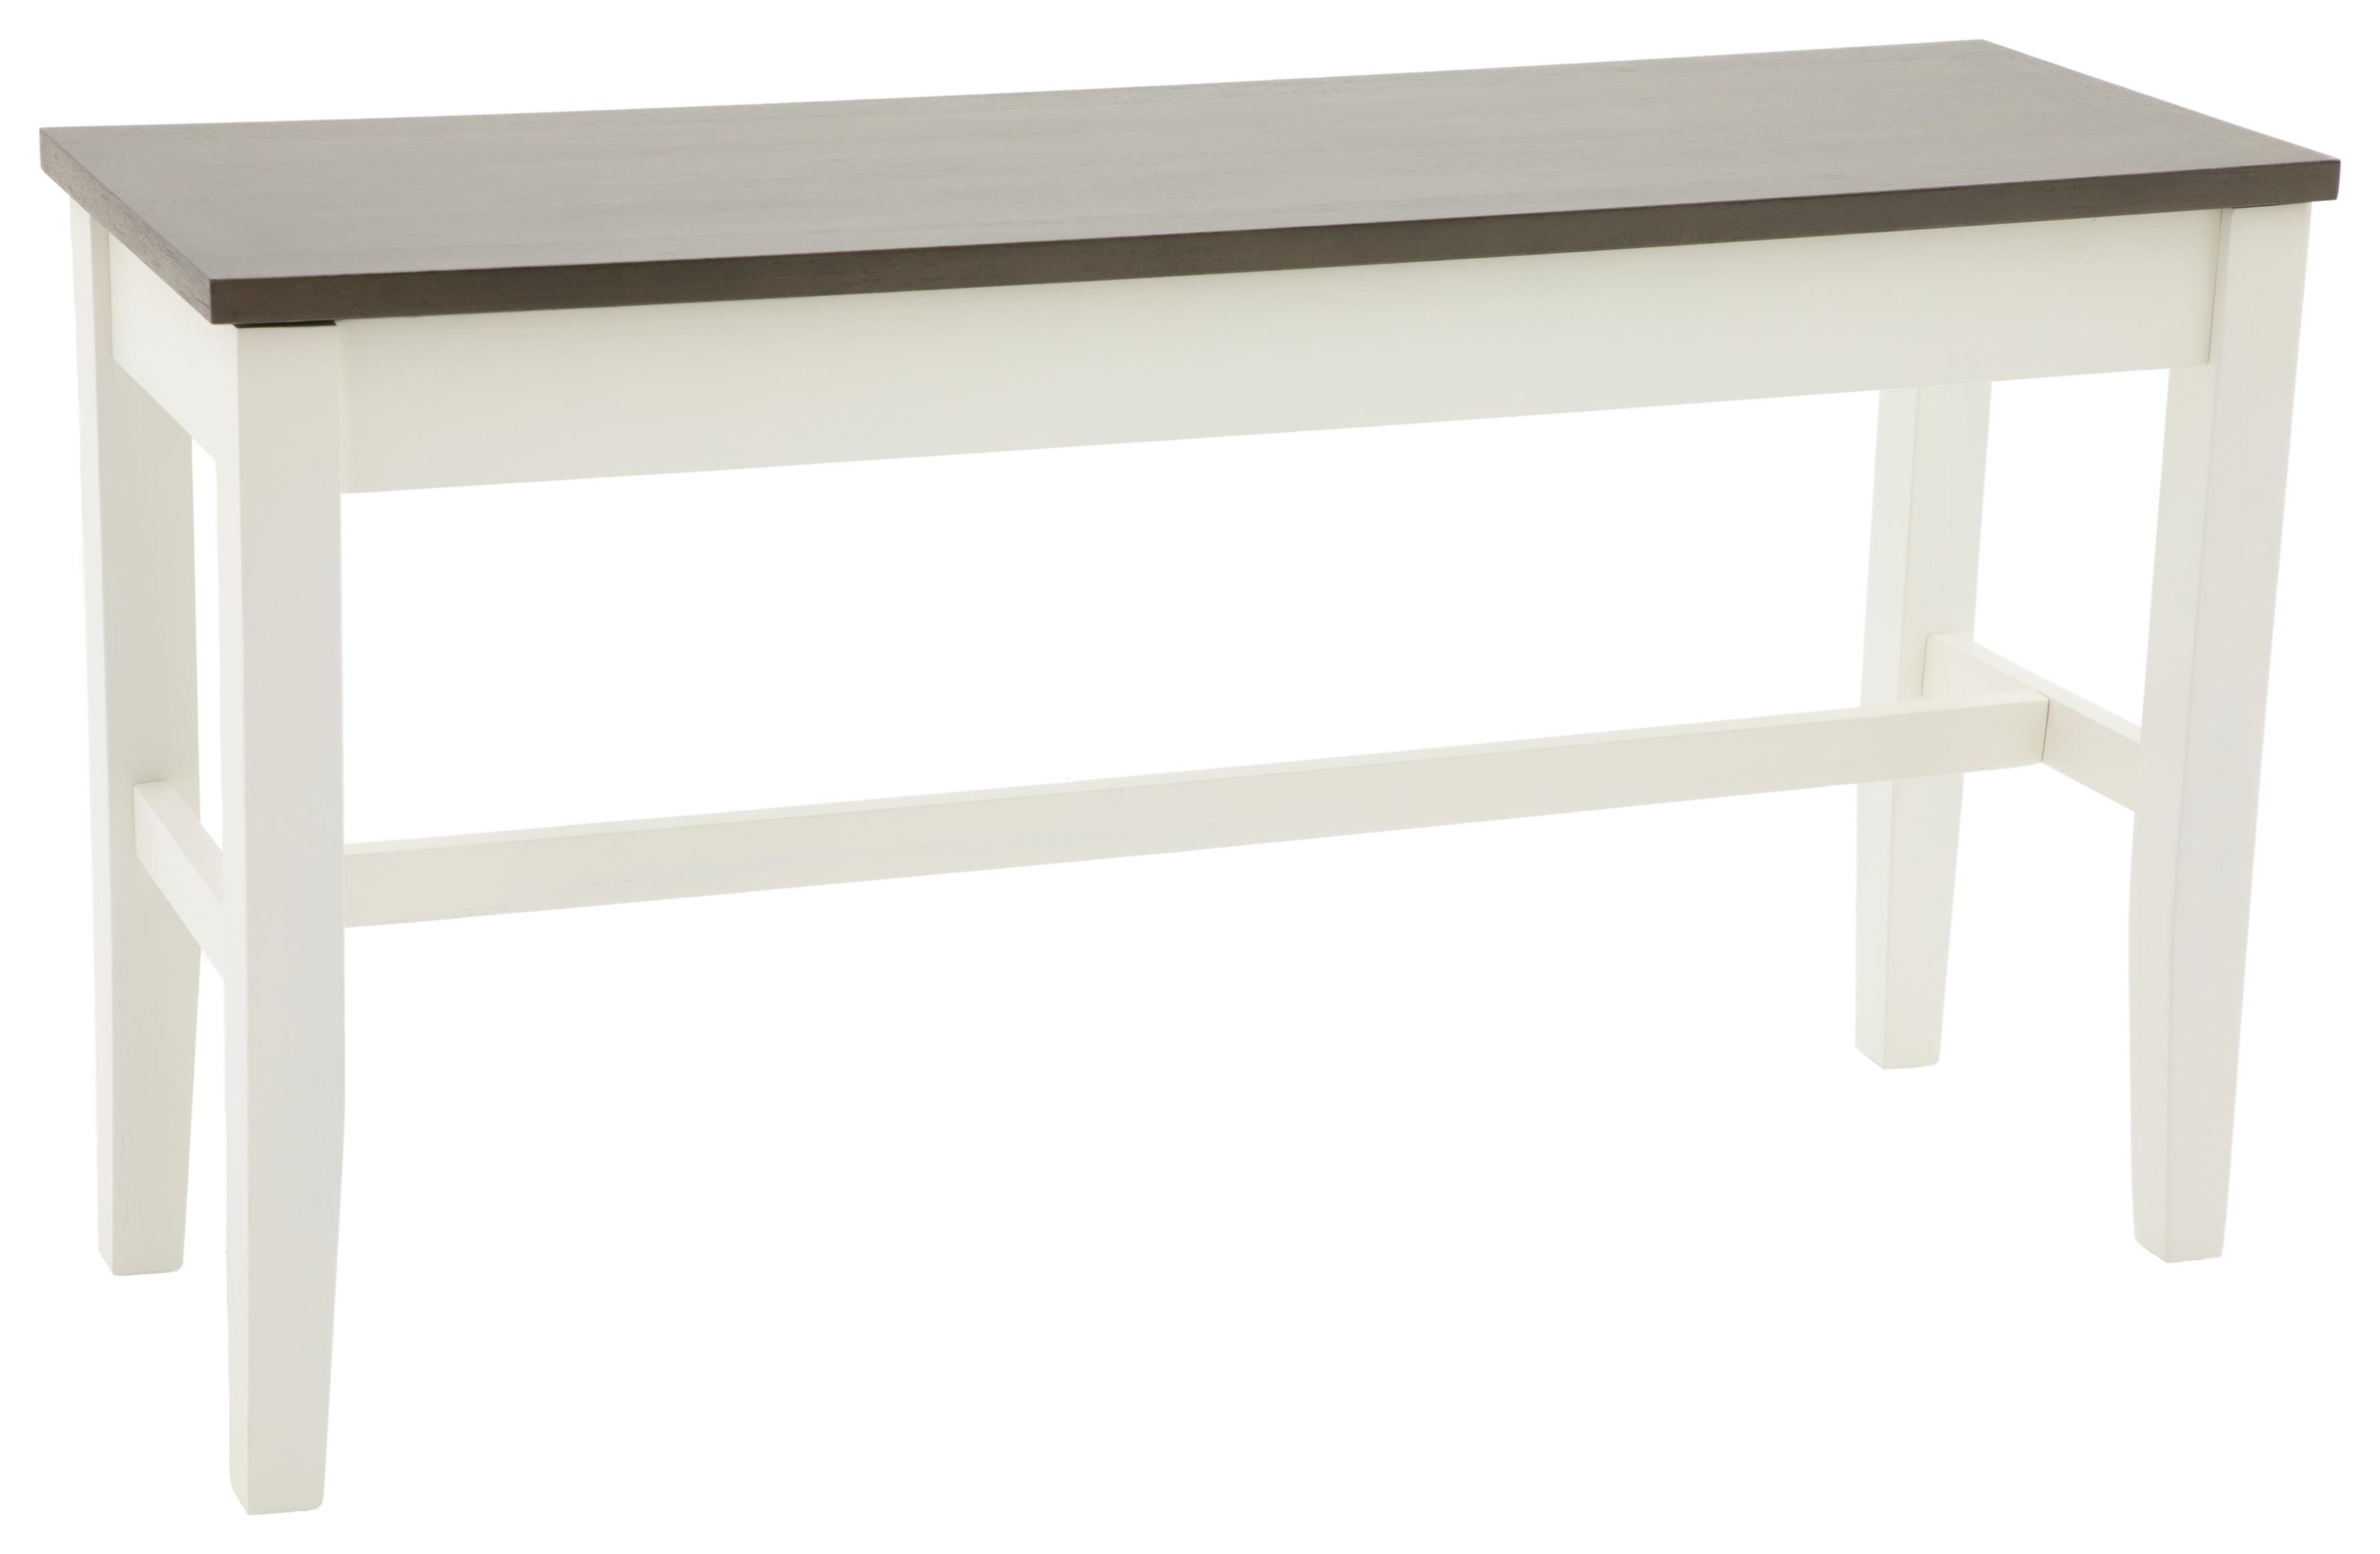 Carey White Carey Counter Height Storage Bench by HH at Walker's Furniture